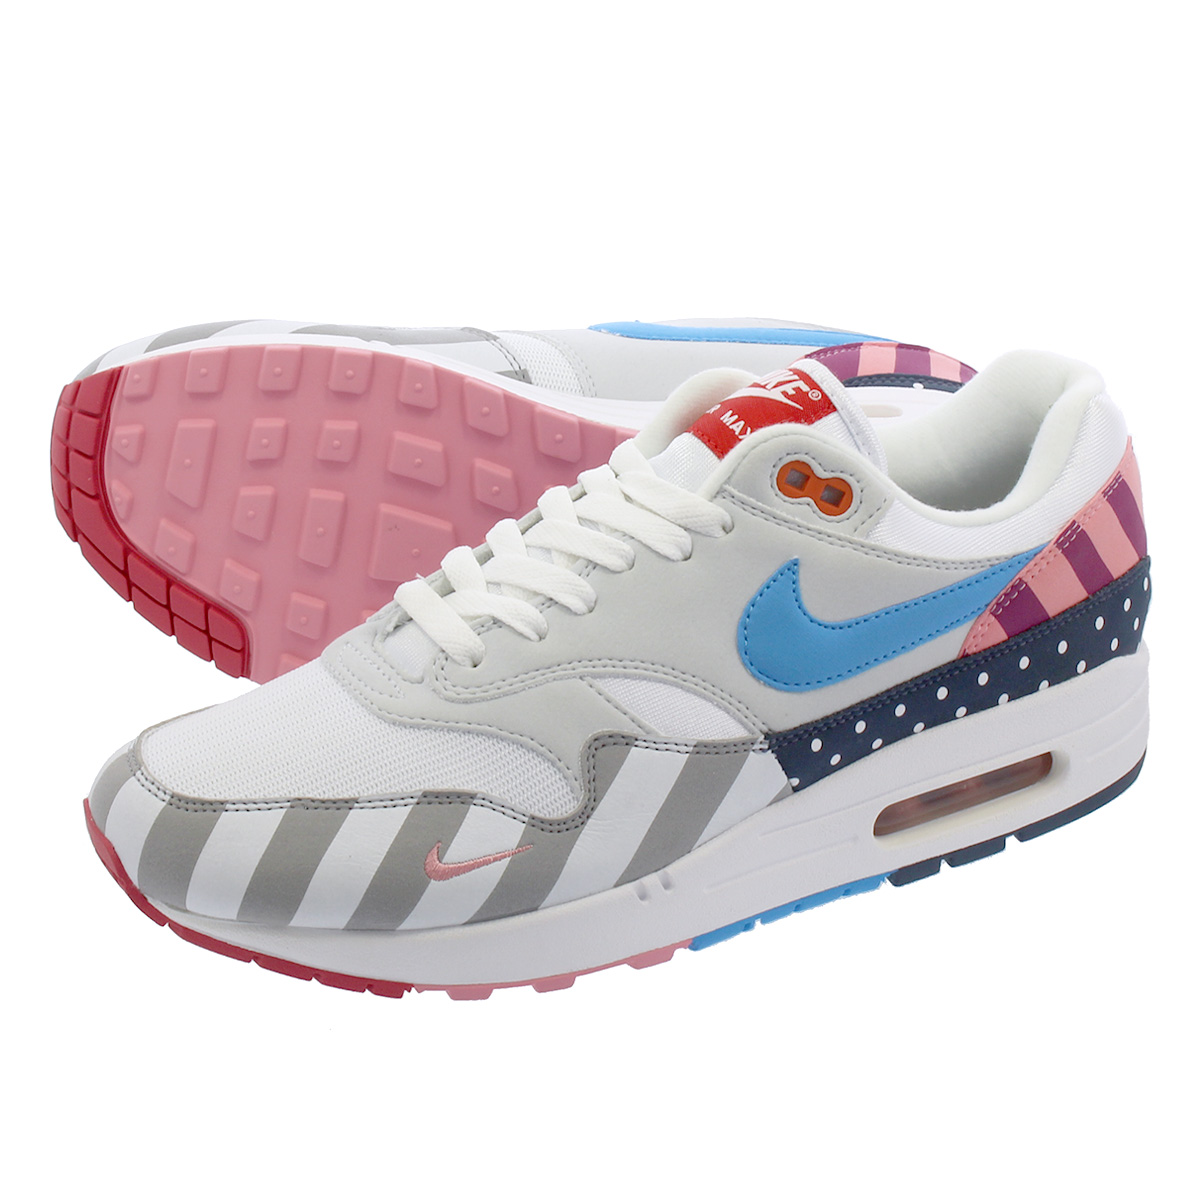 NIKE AIR MAX 1 Kie Ney AMAX 1 WHITEPURE PLATINUMMULTI COLOR at3057 100